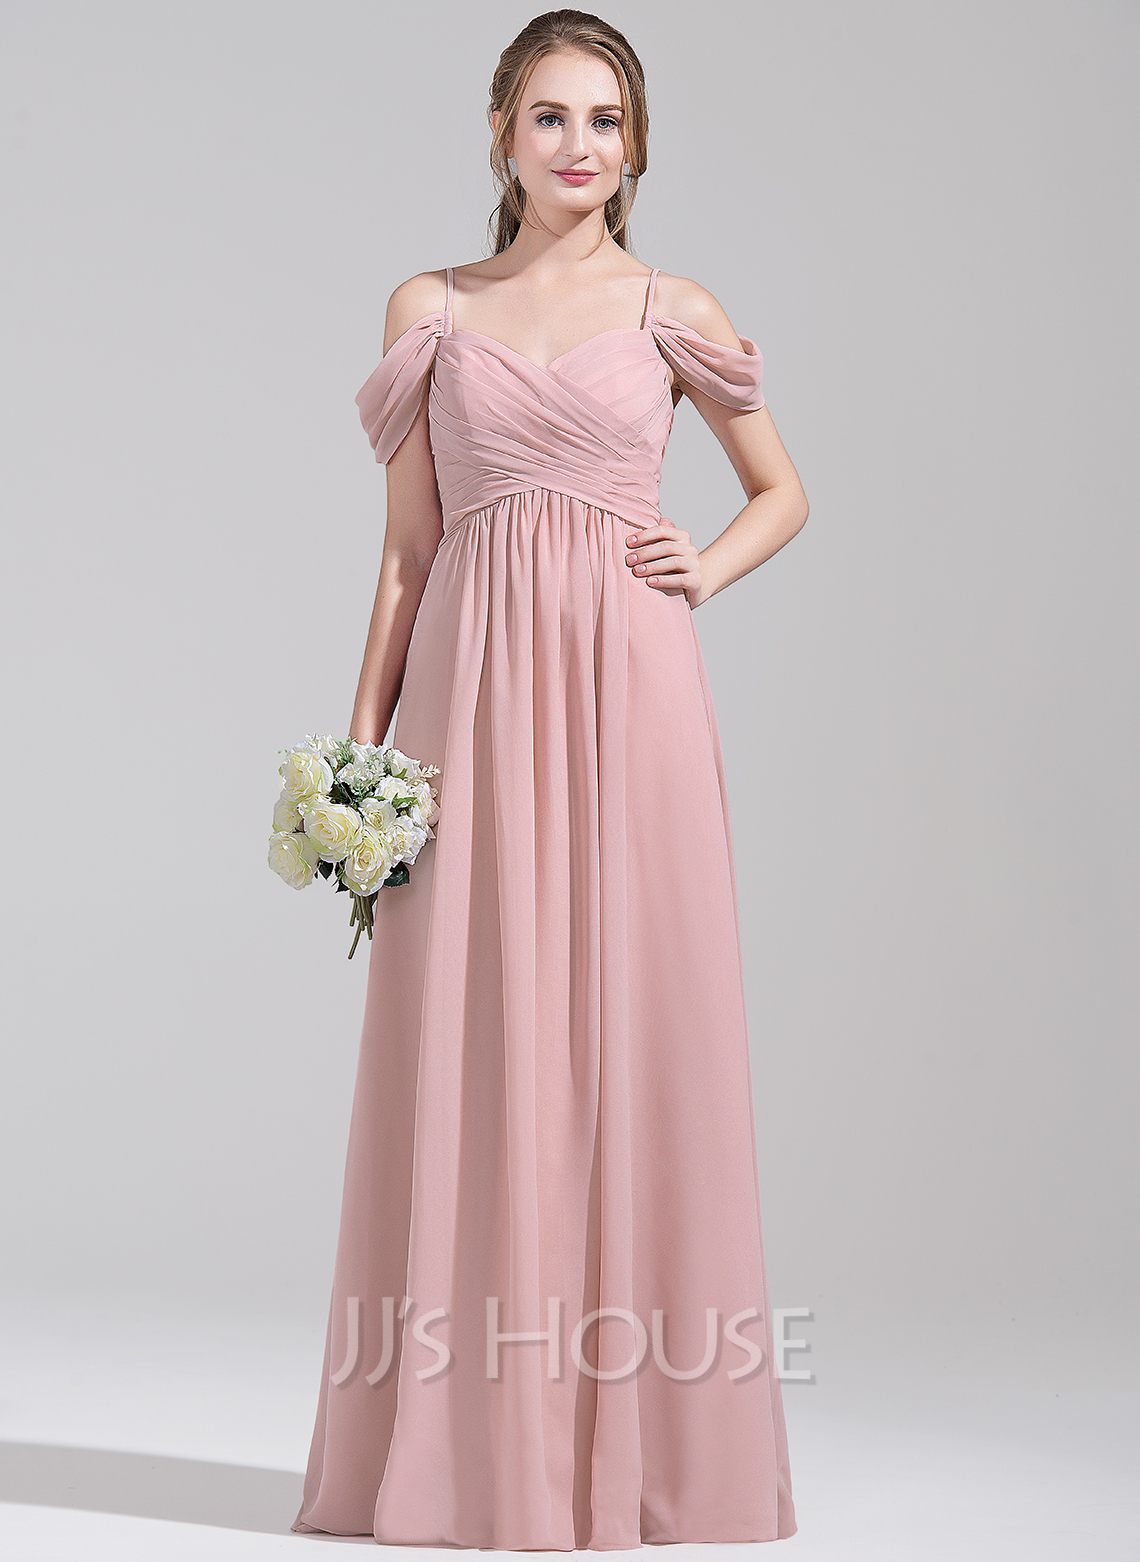 A Line Princess Off The Shoulder Floor Length Chiffon Bridesmaid Dress Loading Zoom